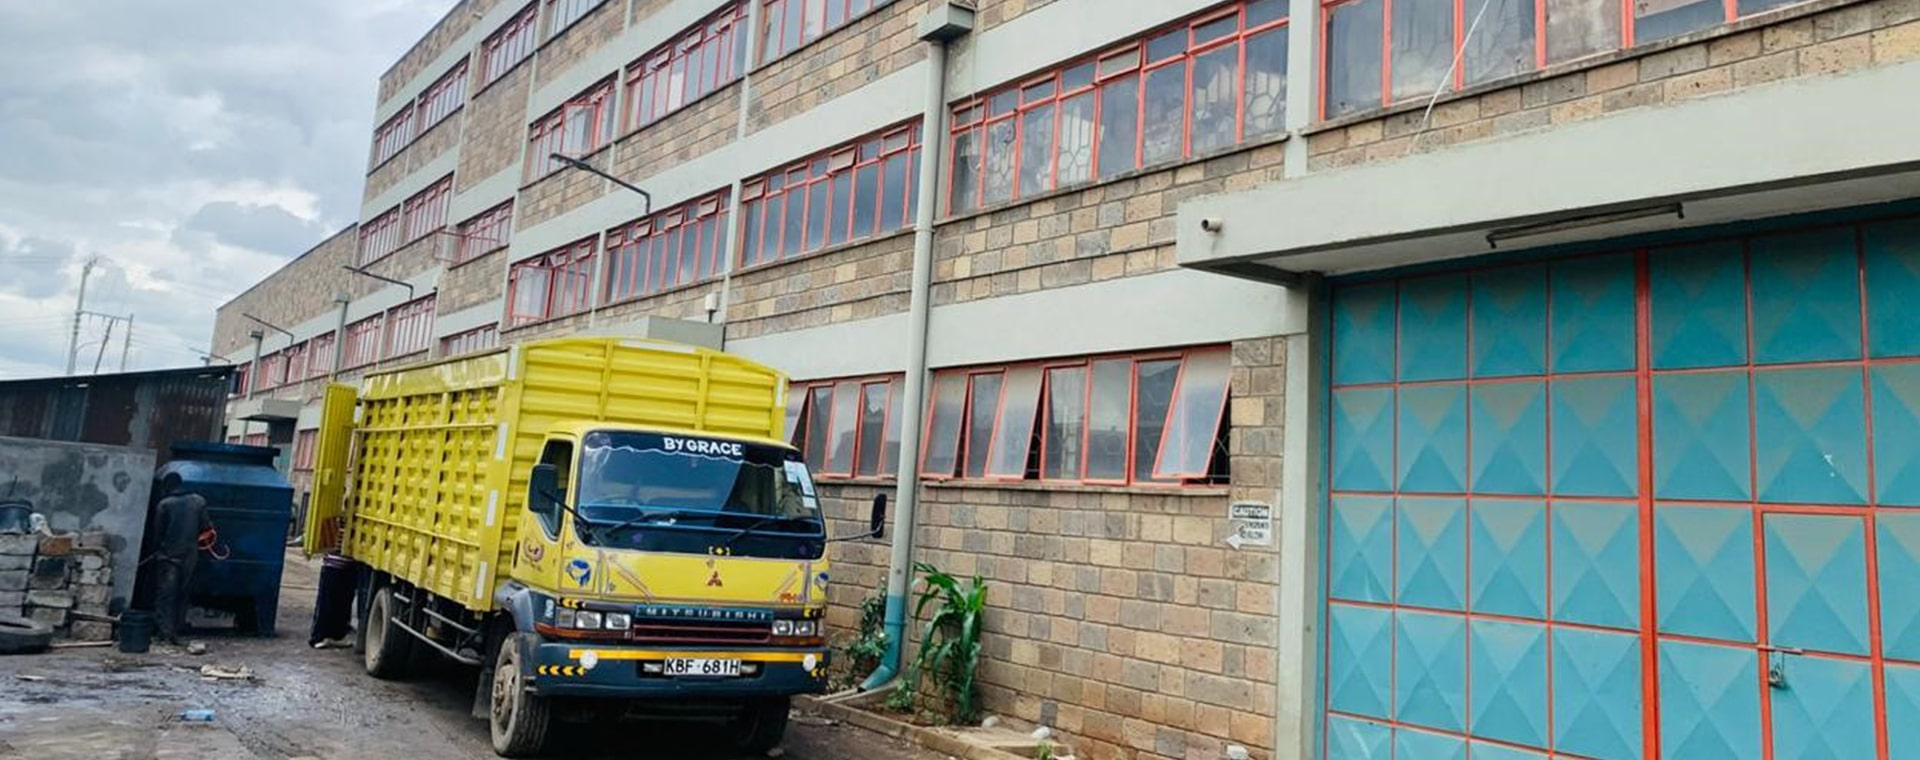 To close the loop, our journey begins at our collection centers, where we receive all types of plastics from homes and businesses with the help of our network of community-based organizations living in informal settlements. From there the plastics are transported to our recycling plants where they are sorted according to the various types of plastics. Once sorting is completed, our shredding machines make granules from the waste, after which these waste granules are put through either hot or cold washing to remove contaminants. The next step involves formulating, blending and compounding the granulates into processed plastics pellets. Each batch is formulated based on the client's needs while the pellets become the feedstock for manufacturing replacing virgin plastics in making new products and re introducing them to the end consumer for use.